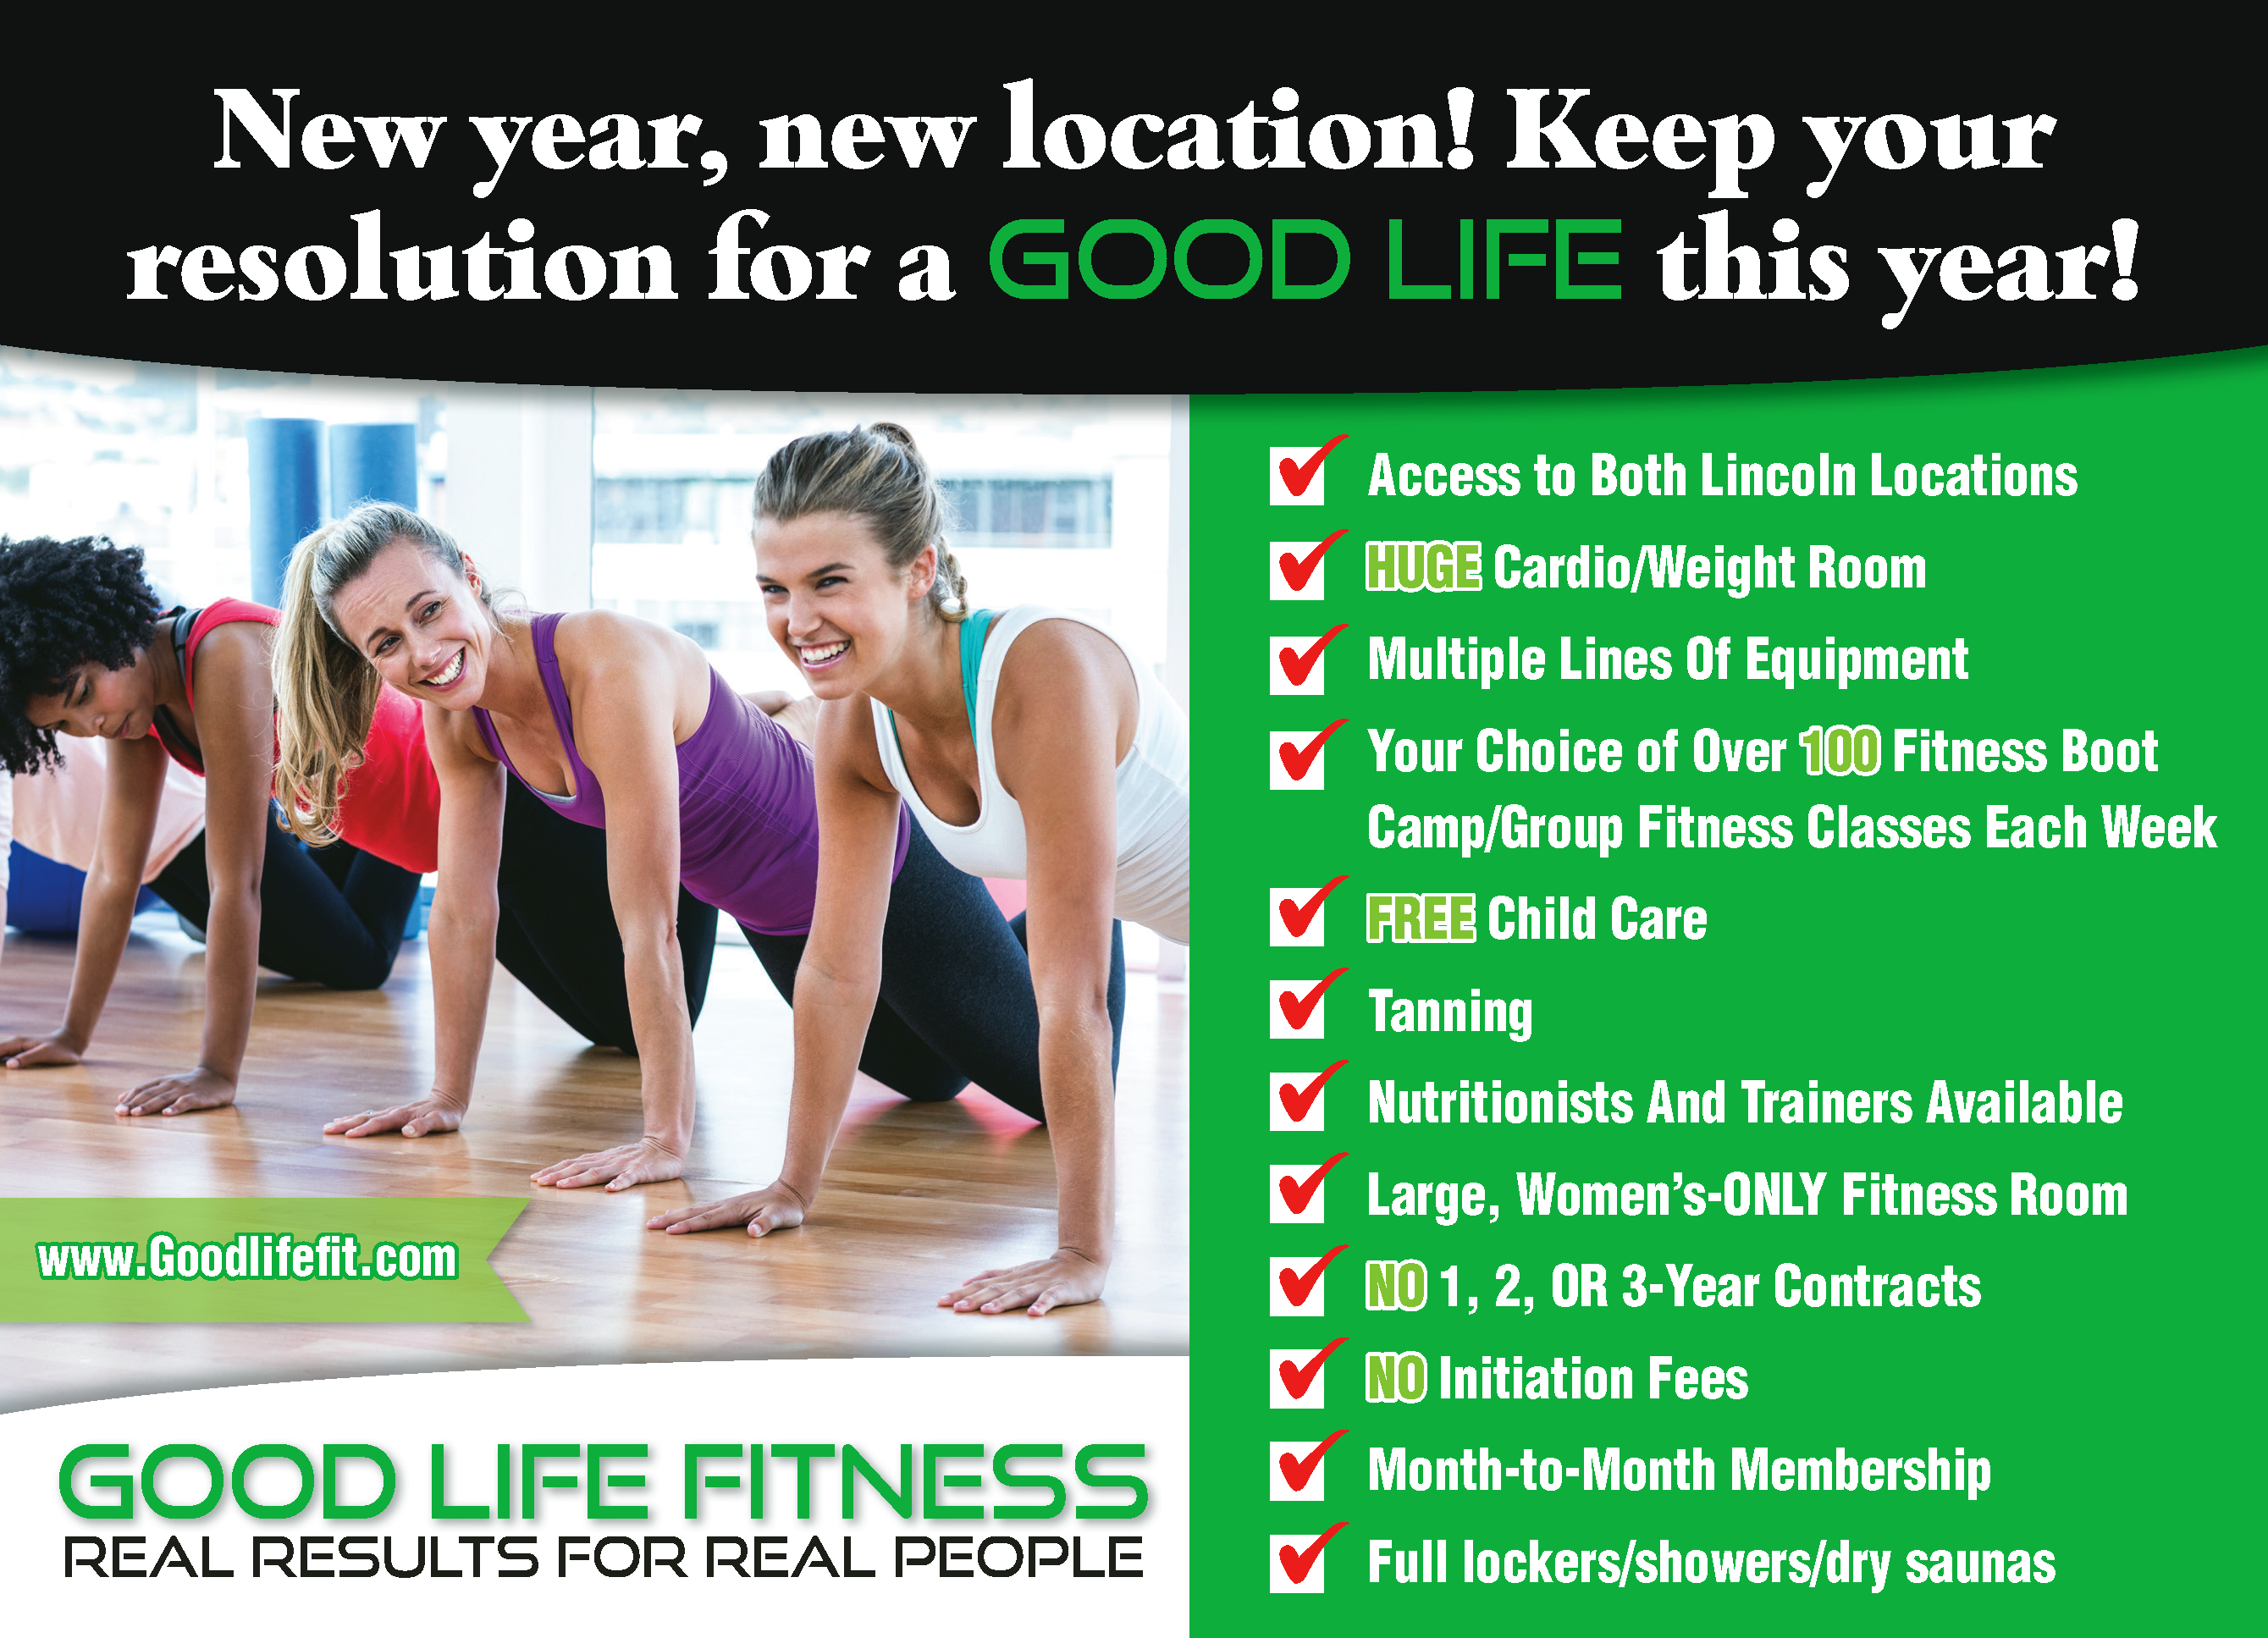 Good Life Fitness Lincolns Locally Owned And Operated Premier